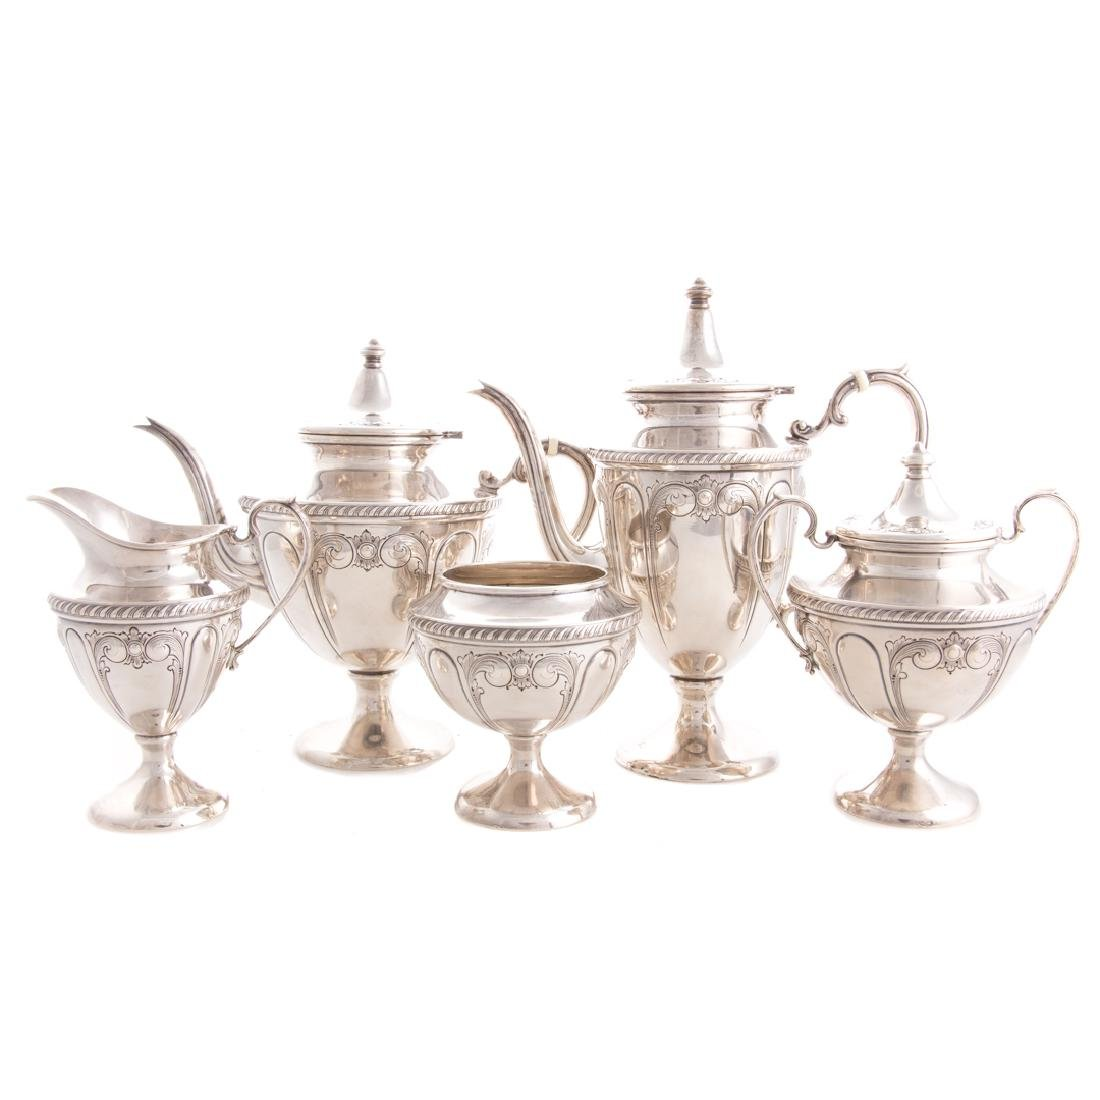 Classical style sterling 5-pc coffee & tea service